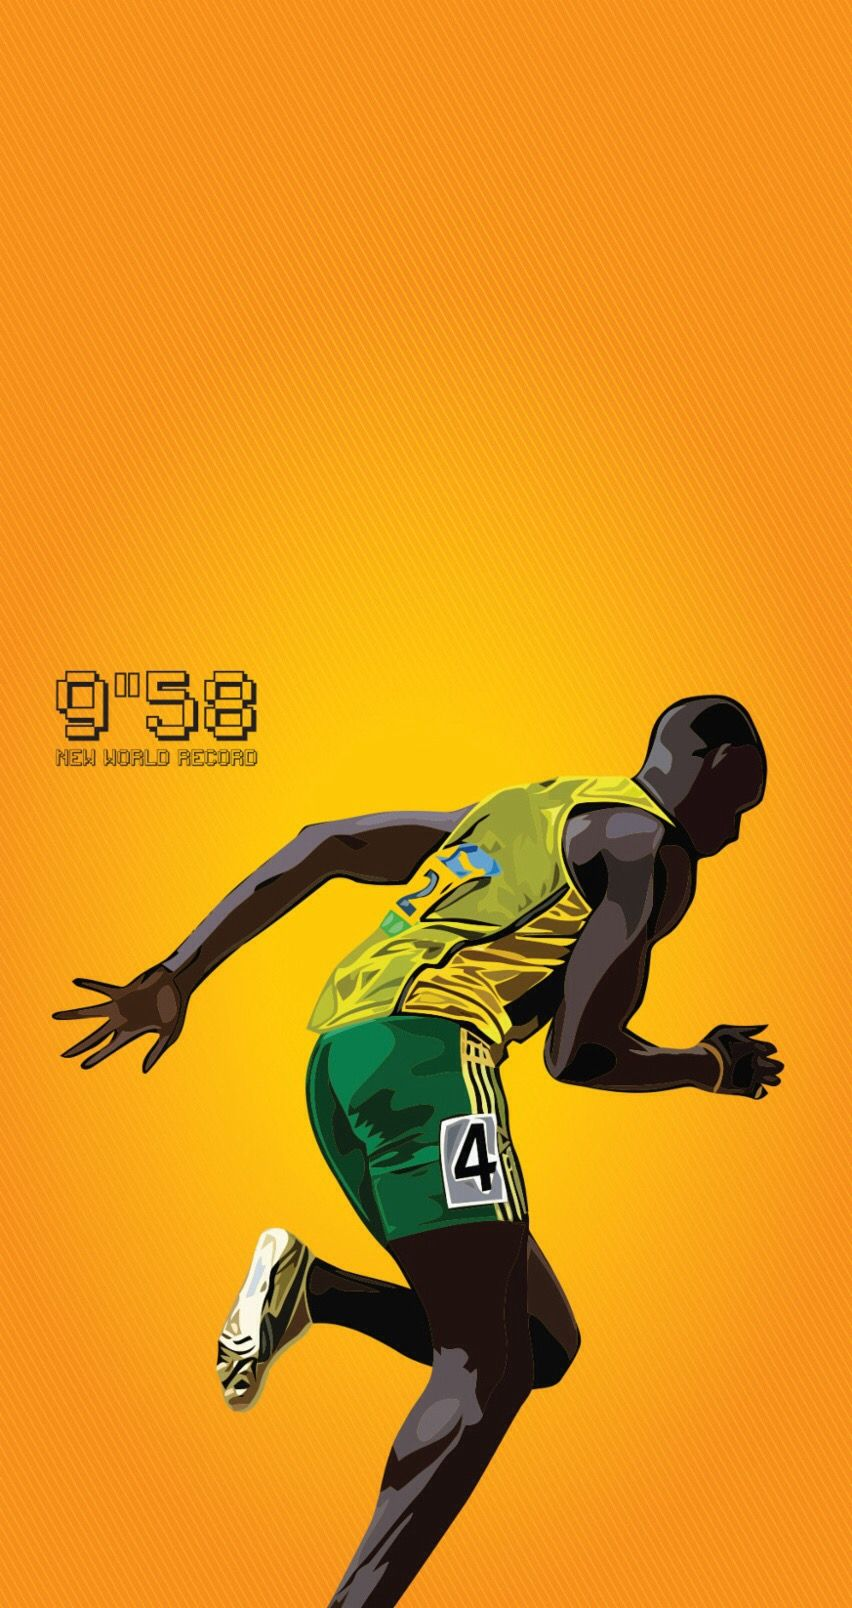 Pin by Choy Tsz Kit Oscar on Quote (With images) Usain